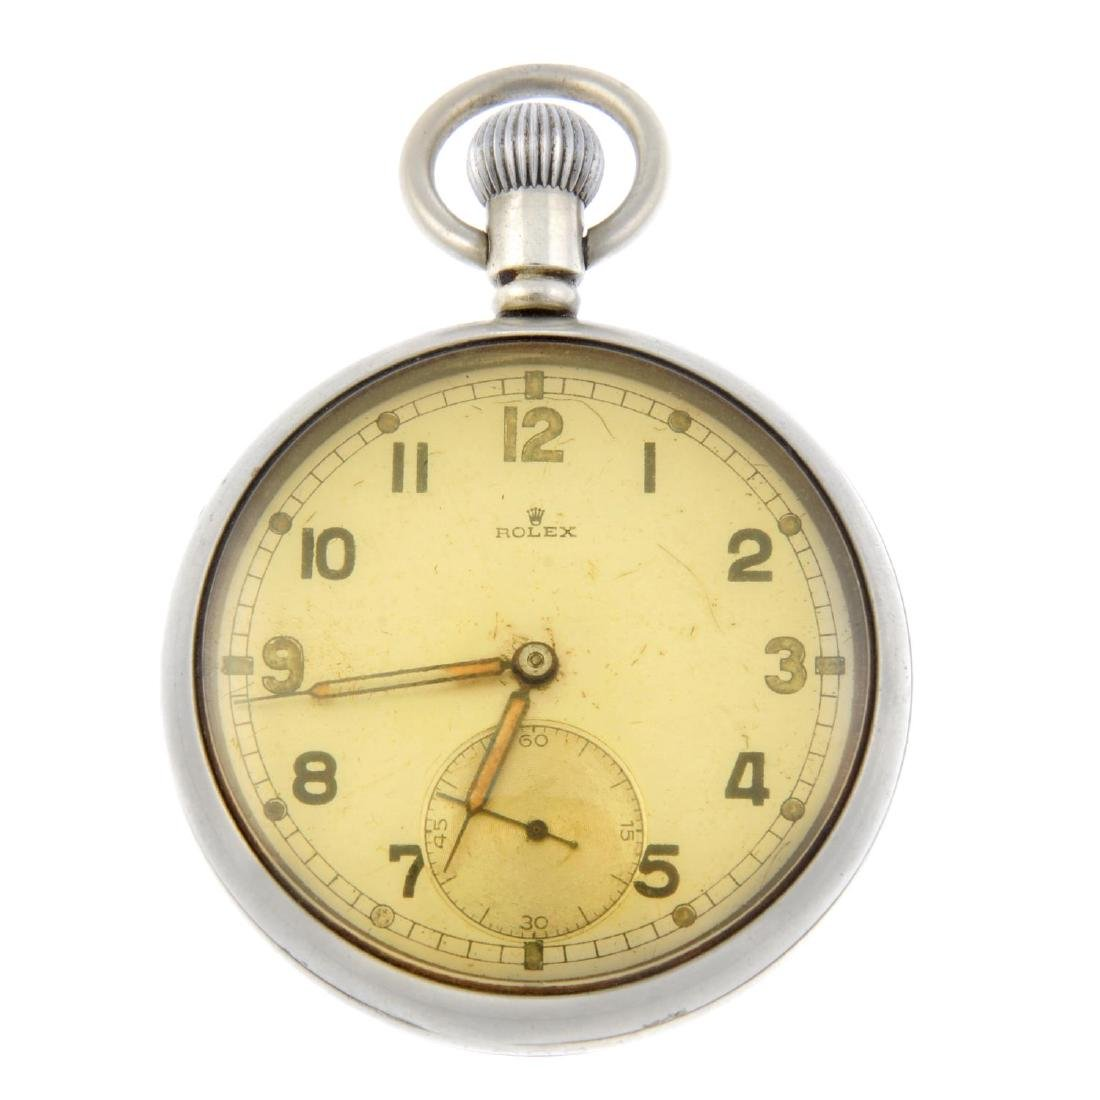 A military issue pocket watch by Rolex. Nickel plated